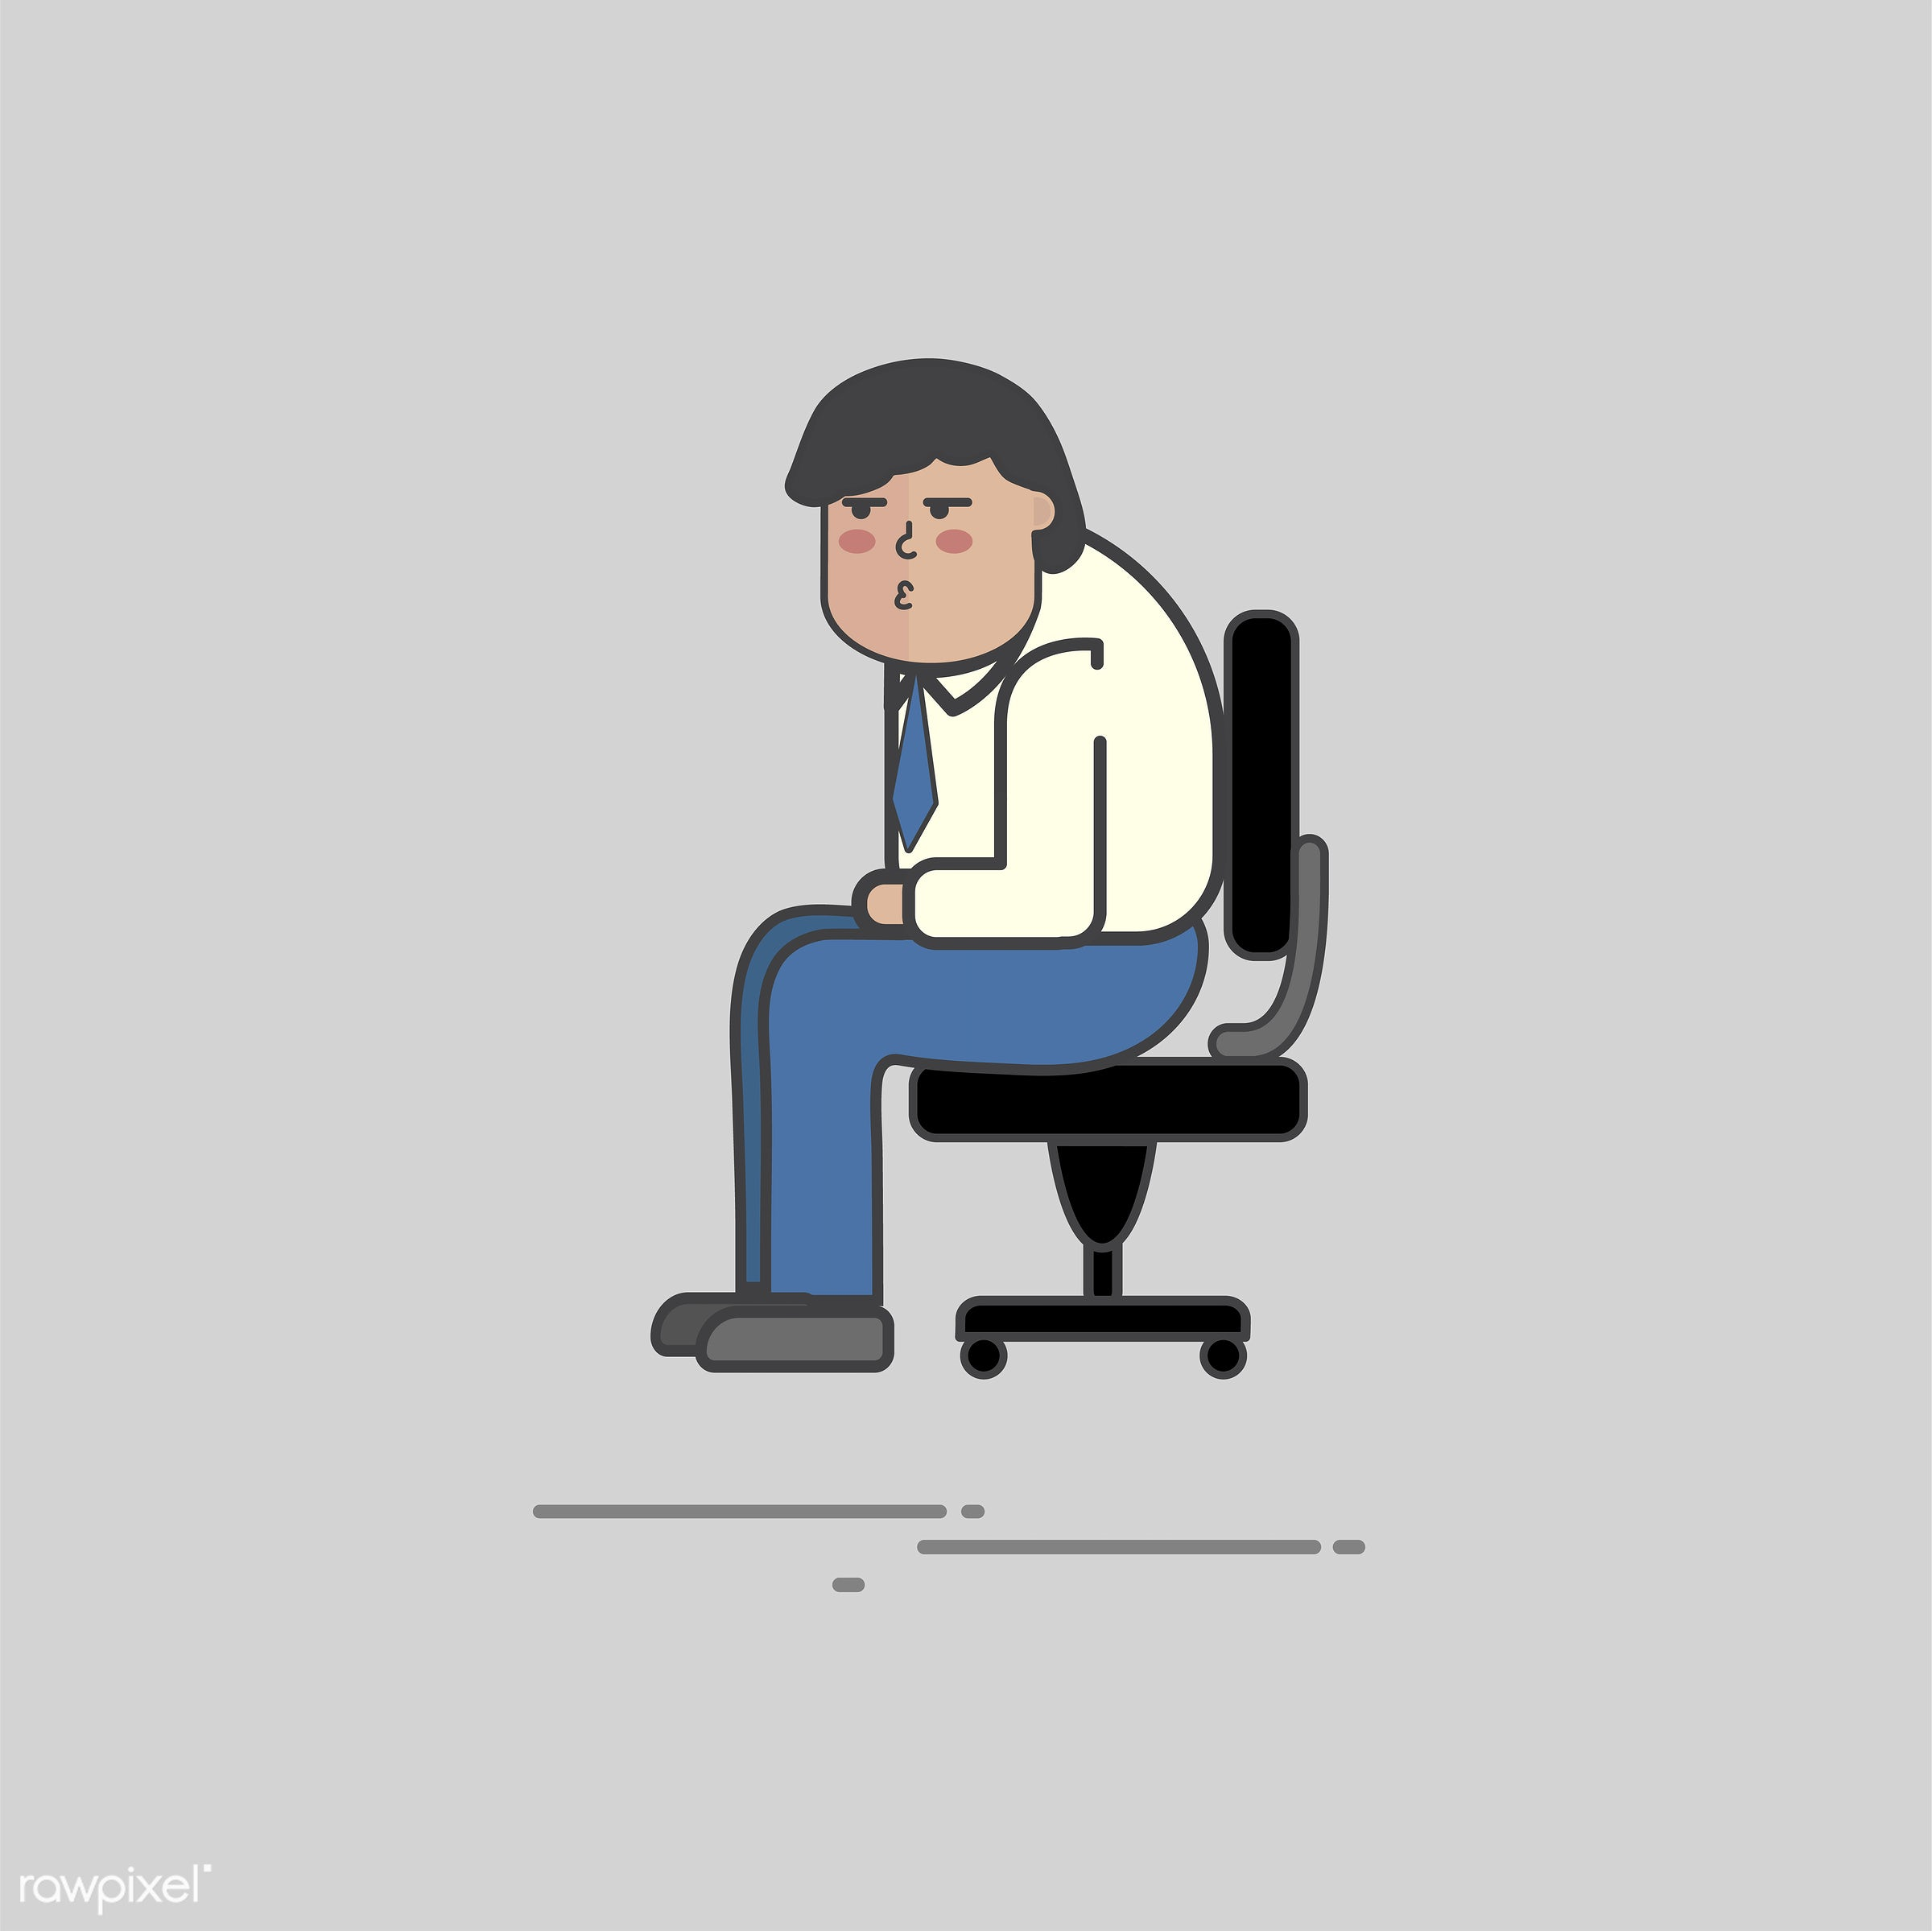 Illustration of people avatar - alone, businessman, cartoon, character, design, drawing, graphic, guy, illustration, male,...